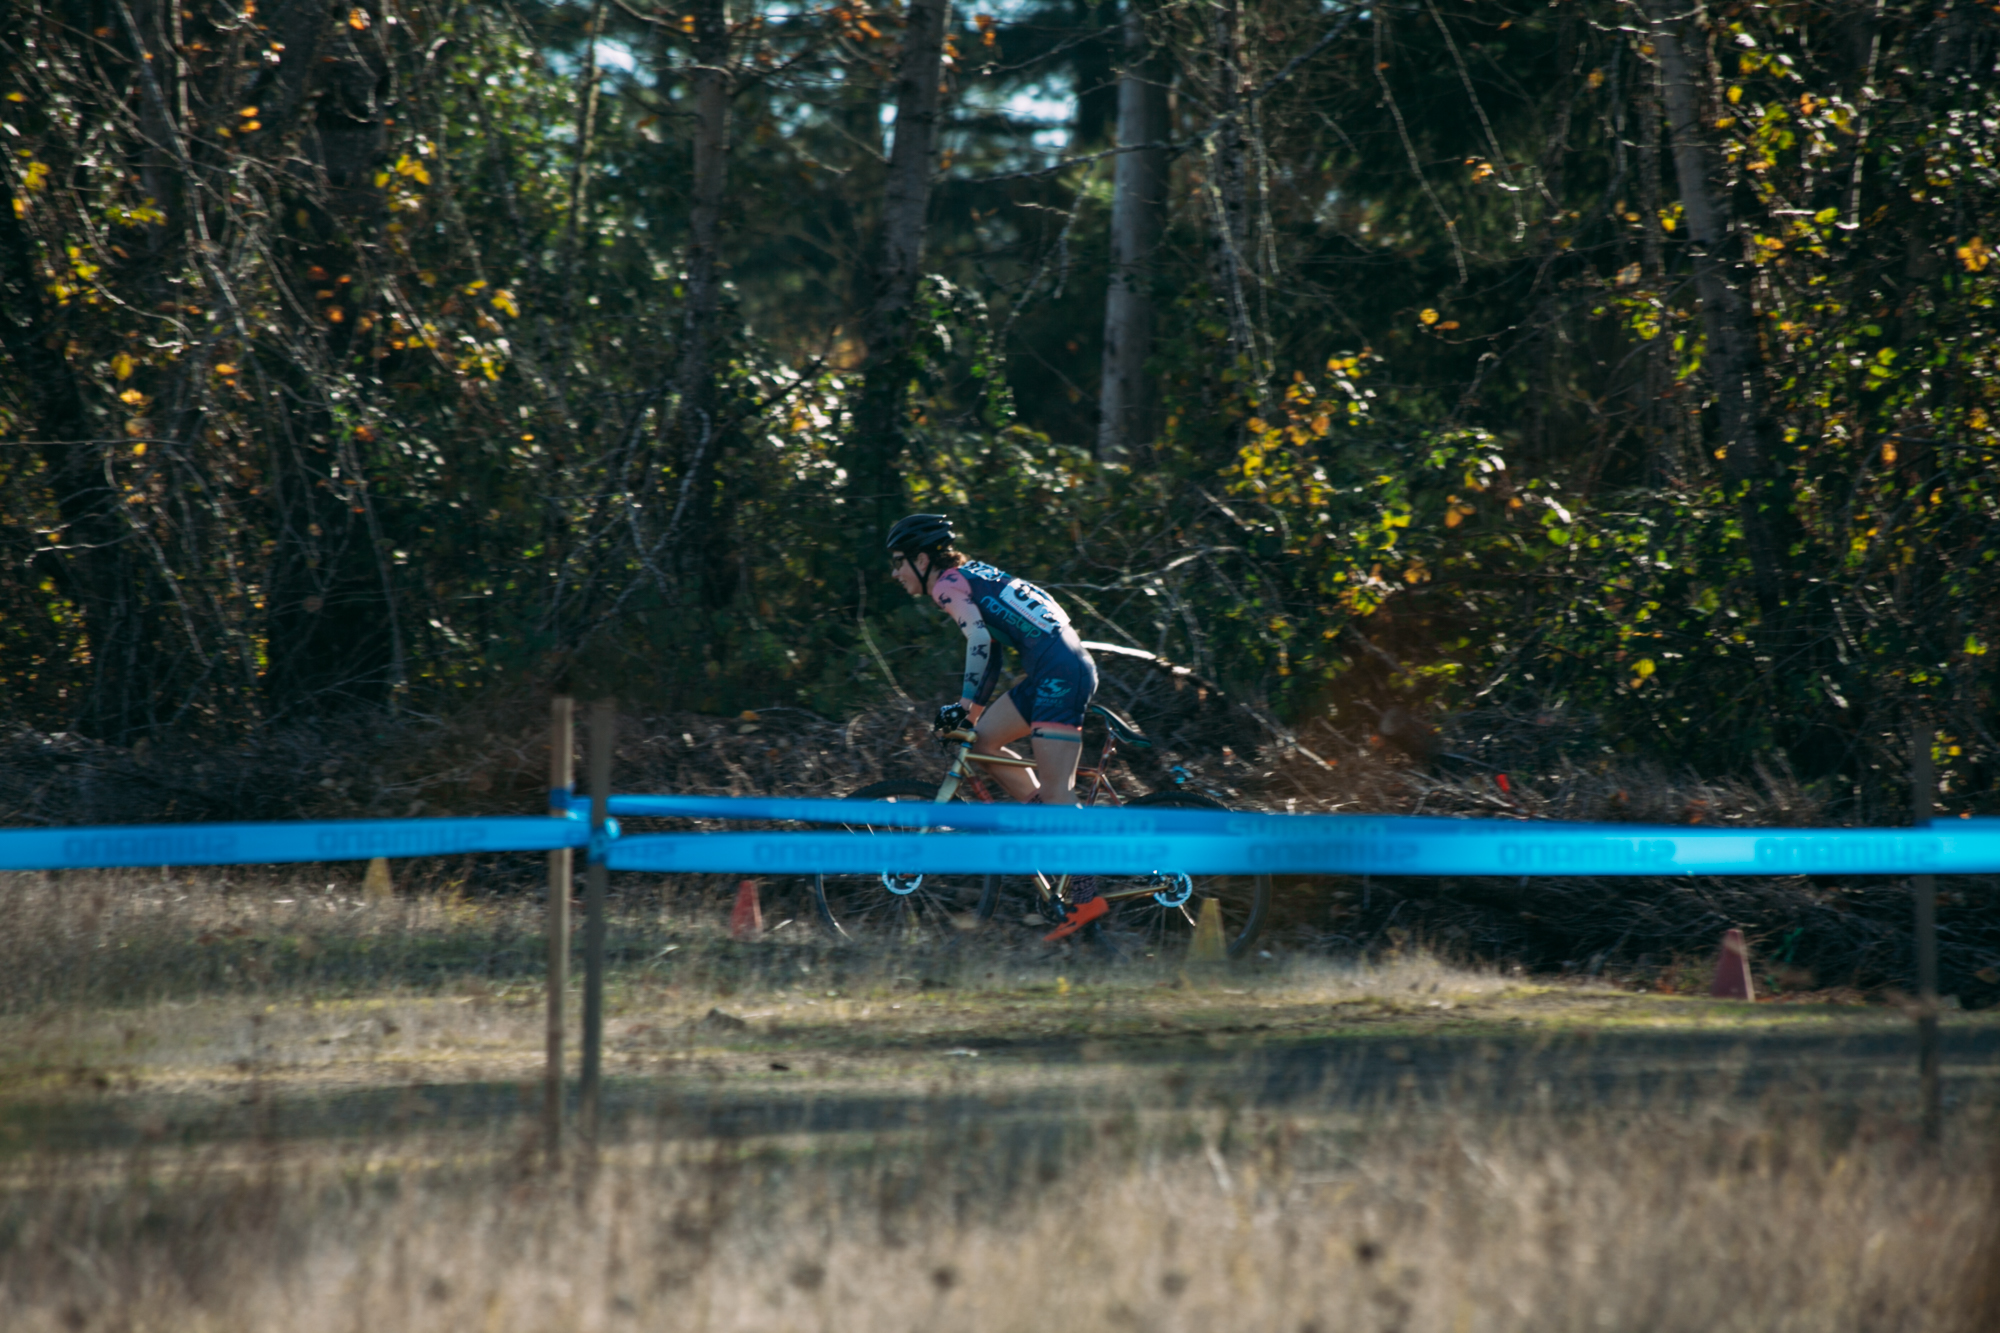 Cyclocross18_CCCX_BartonPark-mettlecycling130.jpg